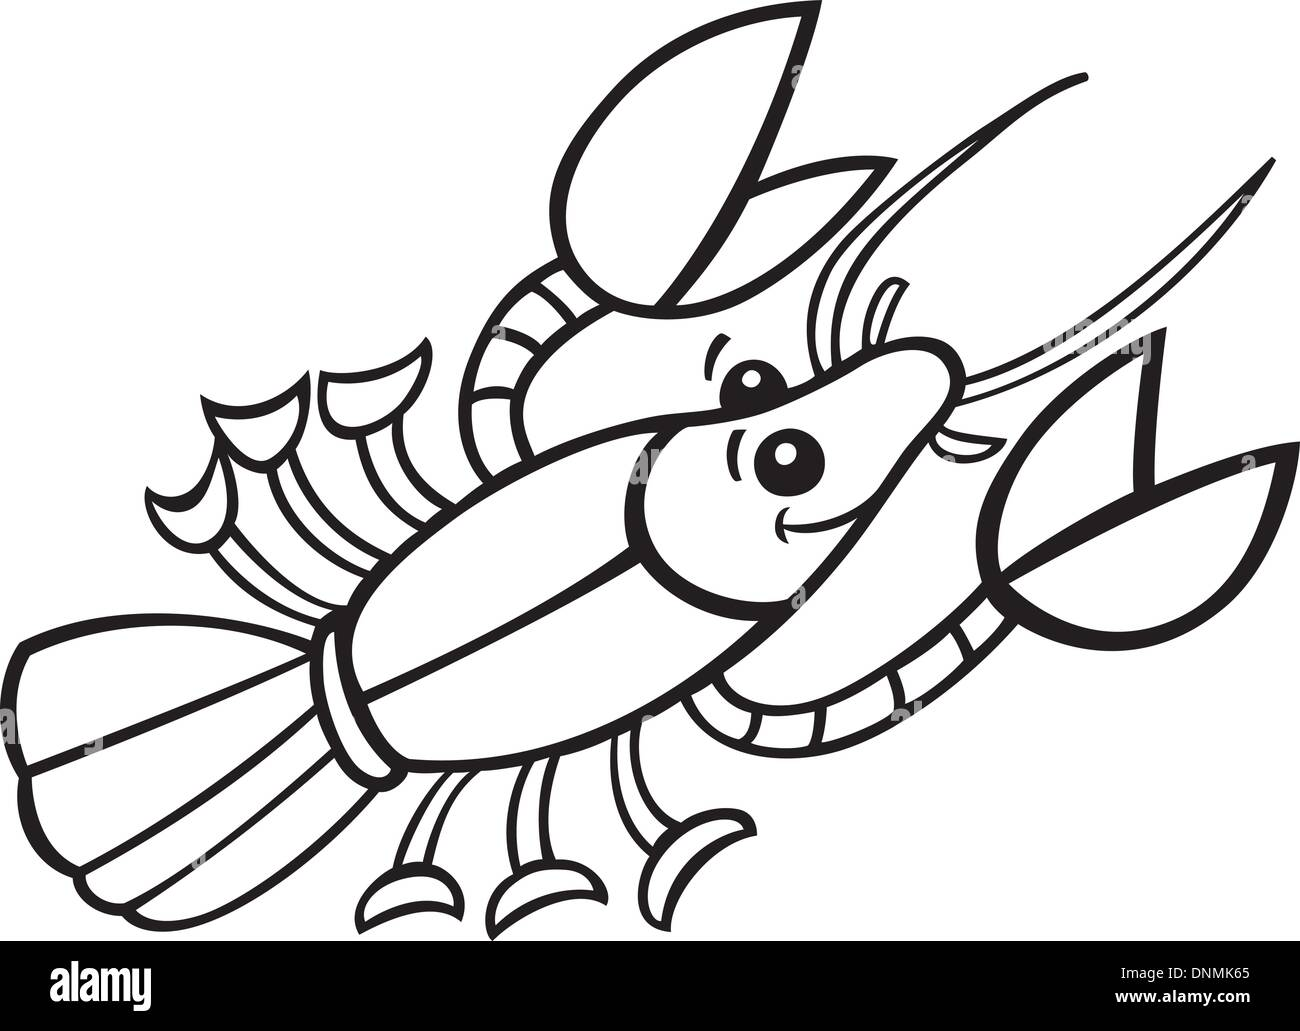 illustration of Crayfish for coloring book - Stock Vector